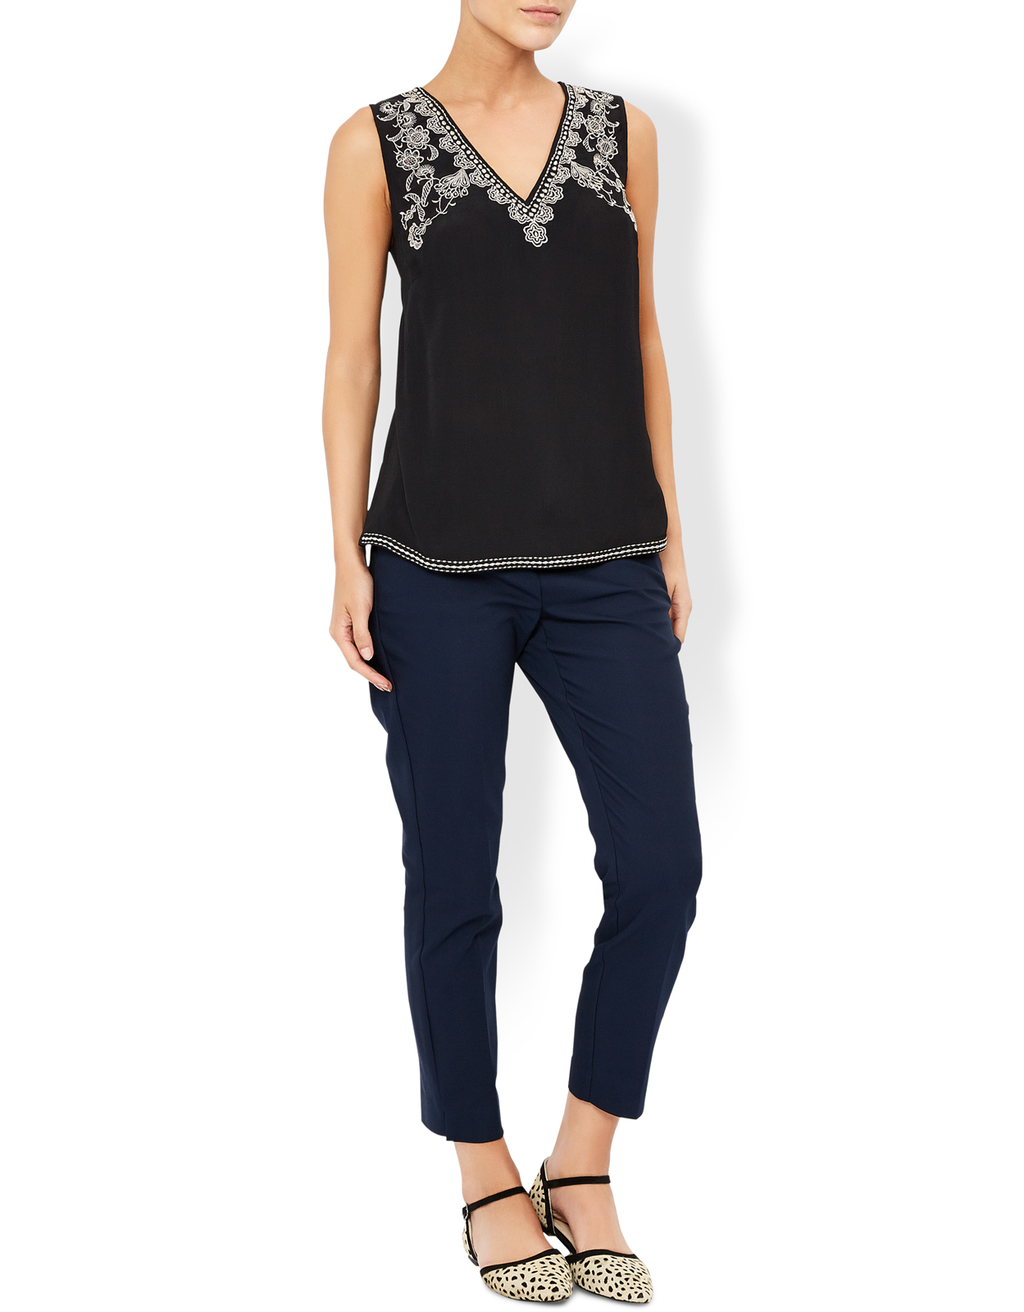 Brittany Embroidered Tank Top - neckline: v-neck; pattern: plain; sleeve style: sleeveless; predominant colour: black; occasions: evening; length: standard; style: top; fibres: viscose/rayon - 100%; fit: body skimming; sleeve length: sleeveless; pattern type: fabric; texture group: other - light to midweight; embellishment: embroidered; season: a/w 2016; wardrobe: event; embellishment location: bust